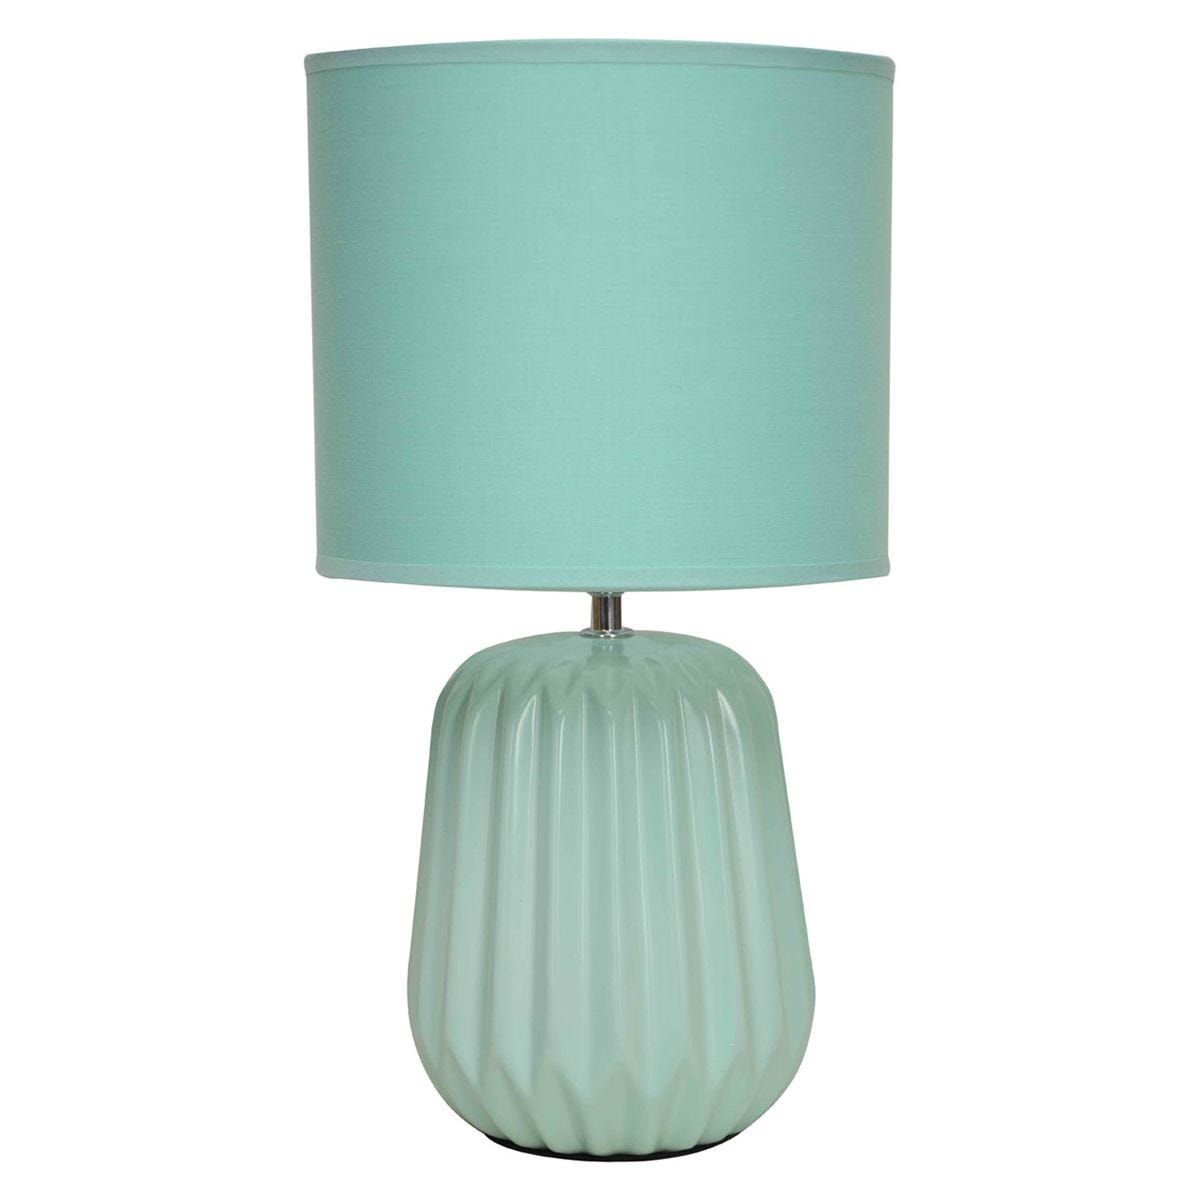 Premier Housewares Winola Table Lamp in Turquoise Ceramic with Turquoise Fabric Shade